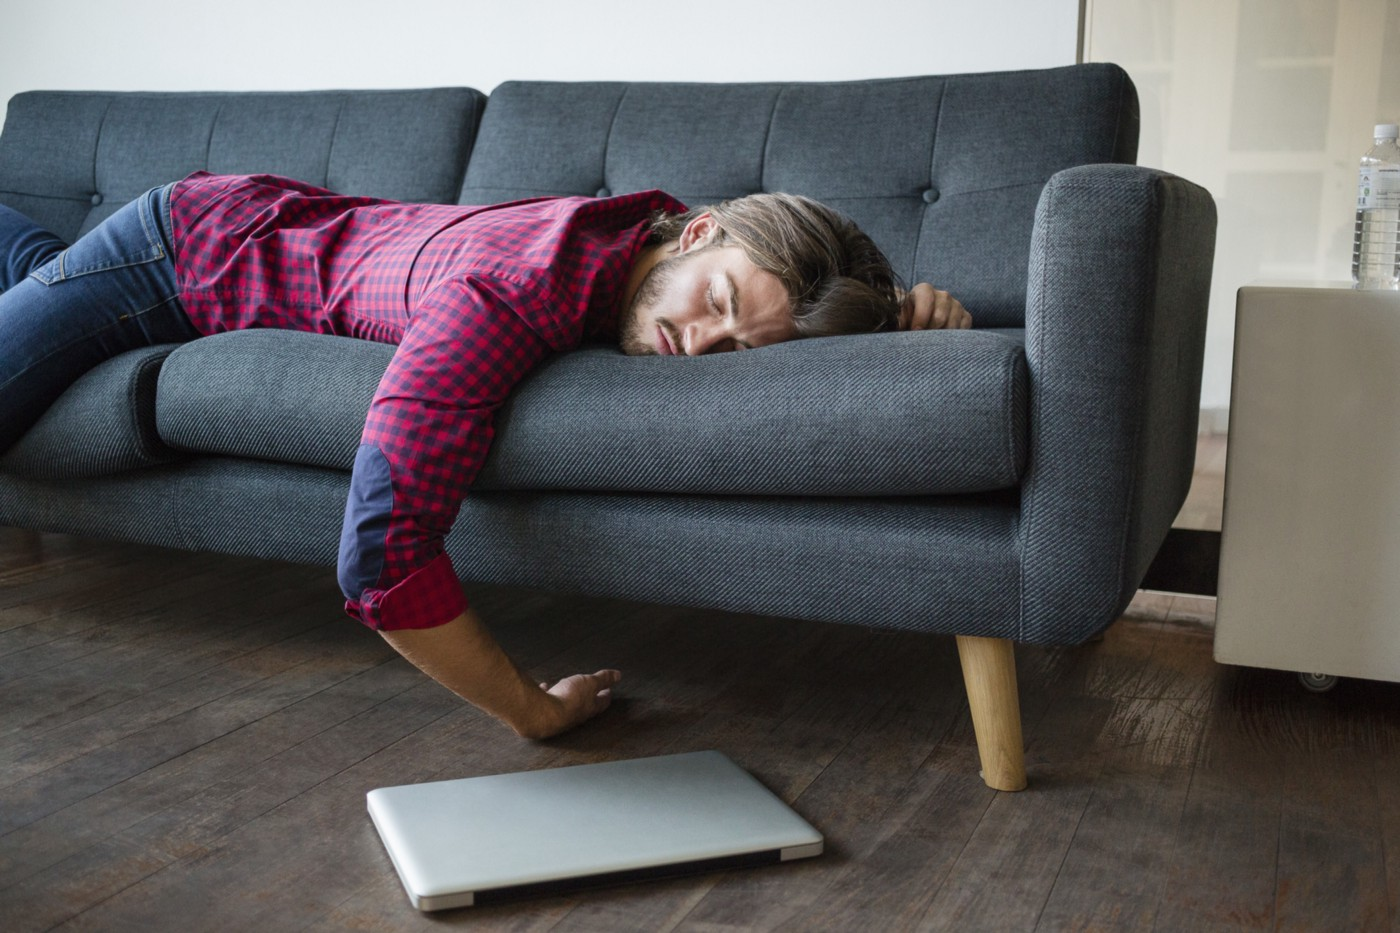 A photo of a sleeping man on the couch, laptop on the floor.